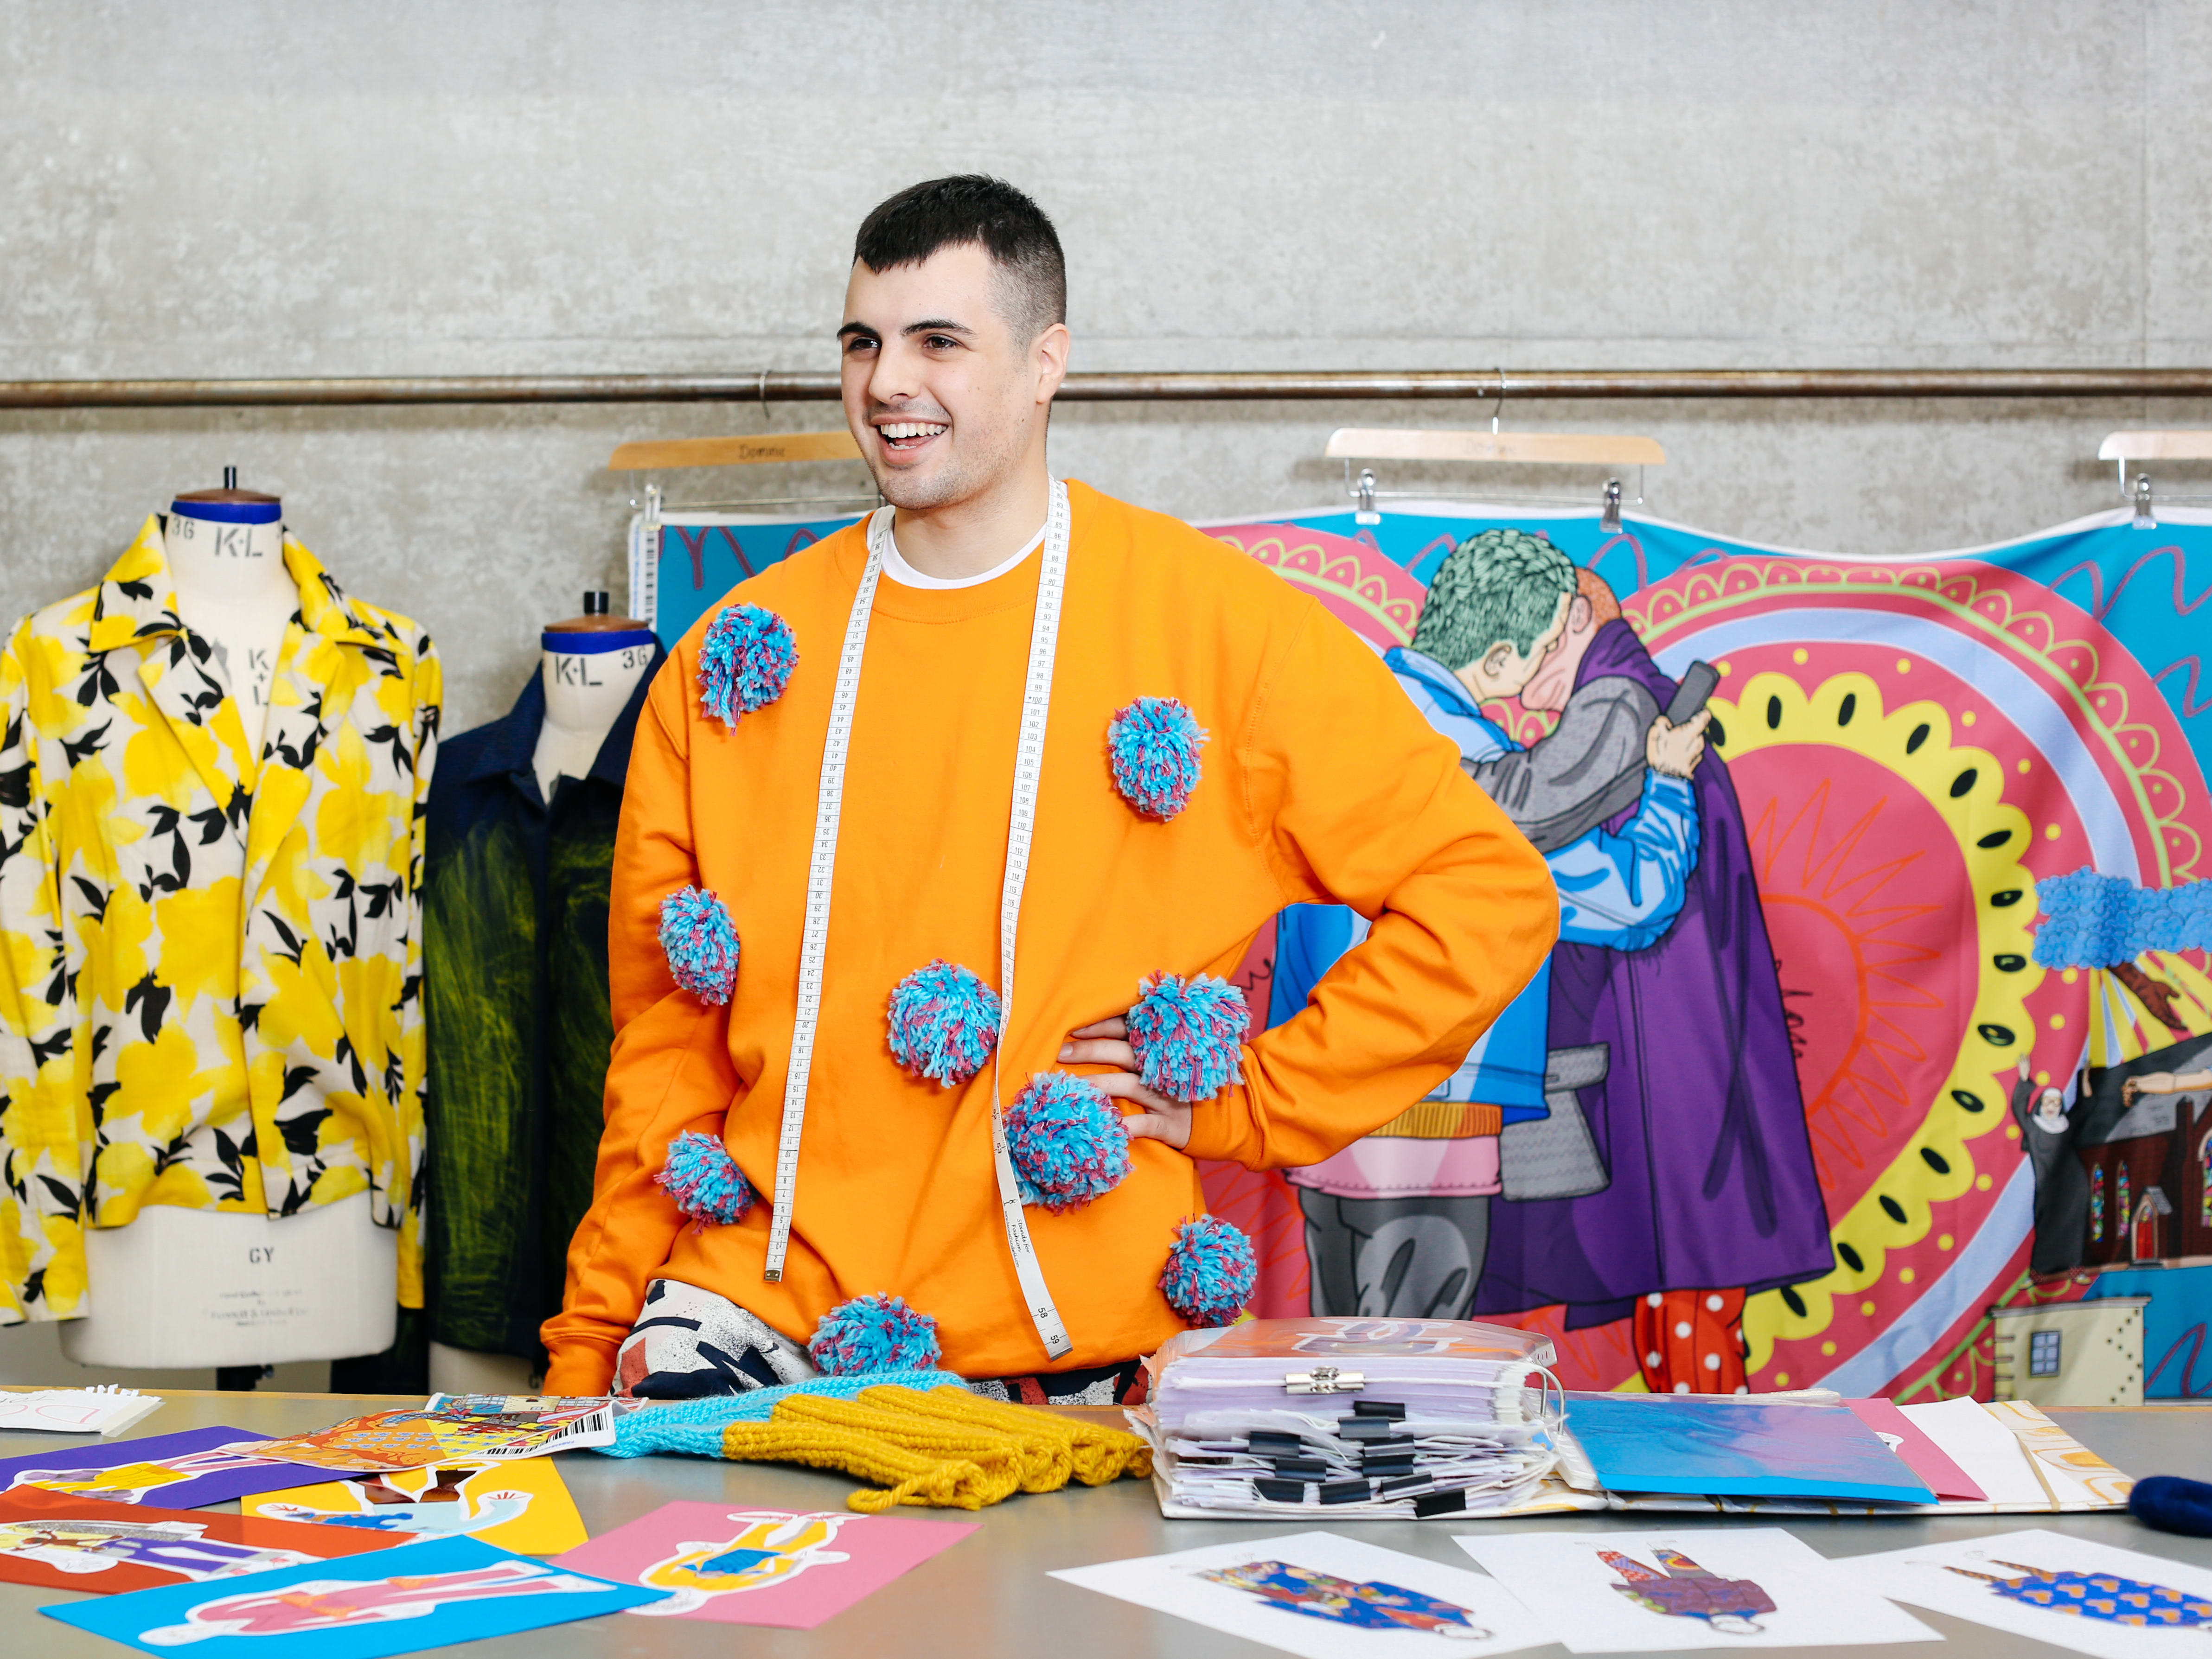 Dominic, a student from Central Saint Martins